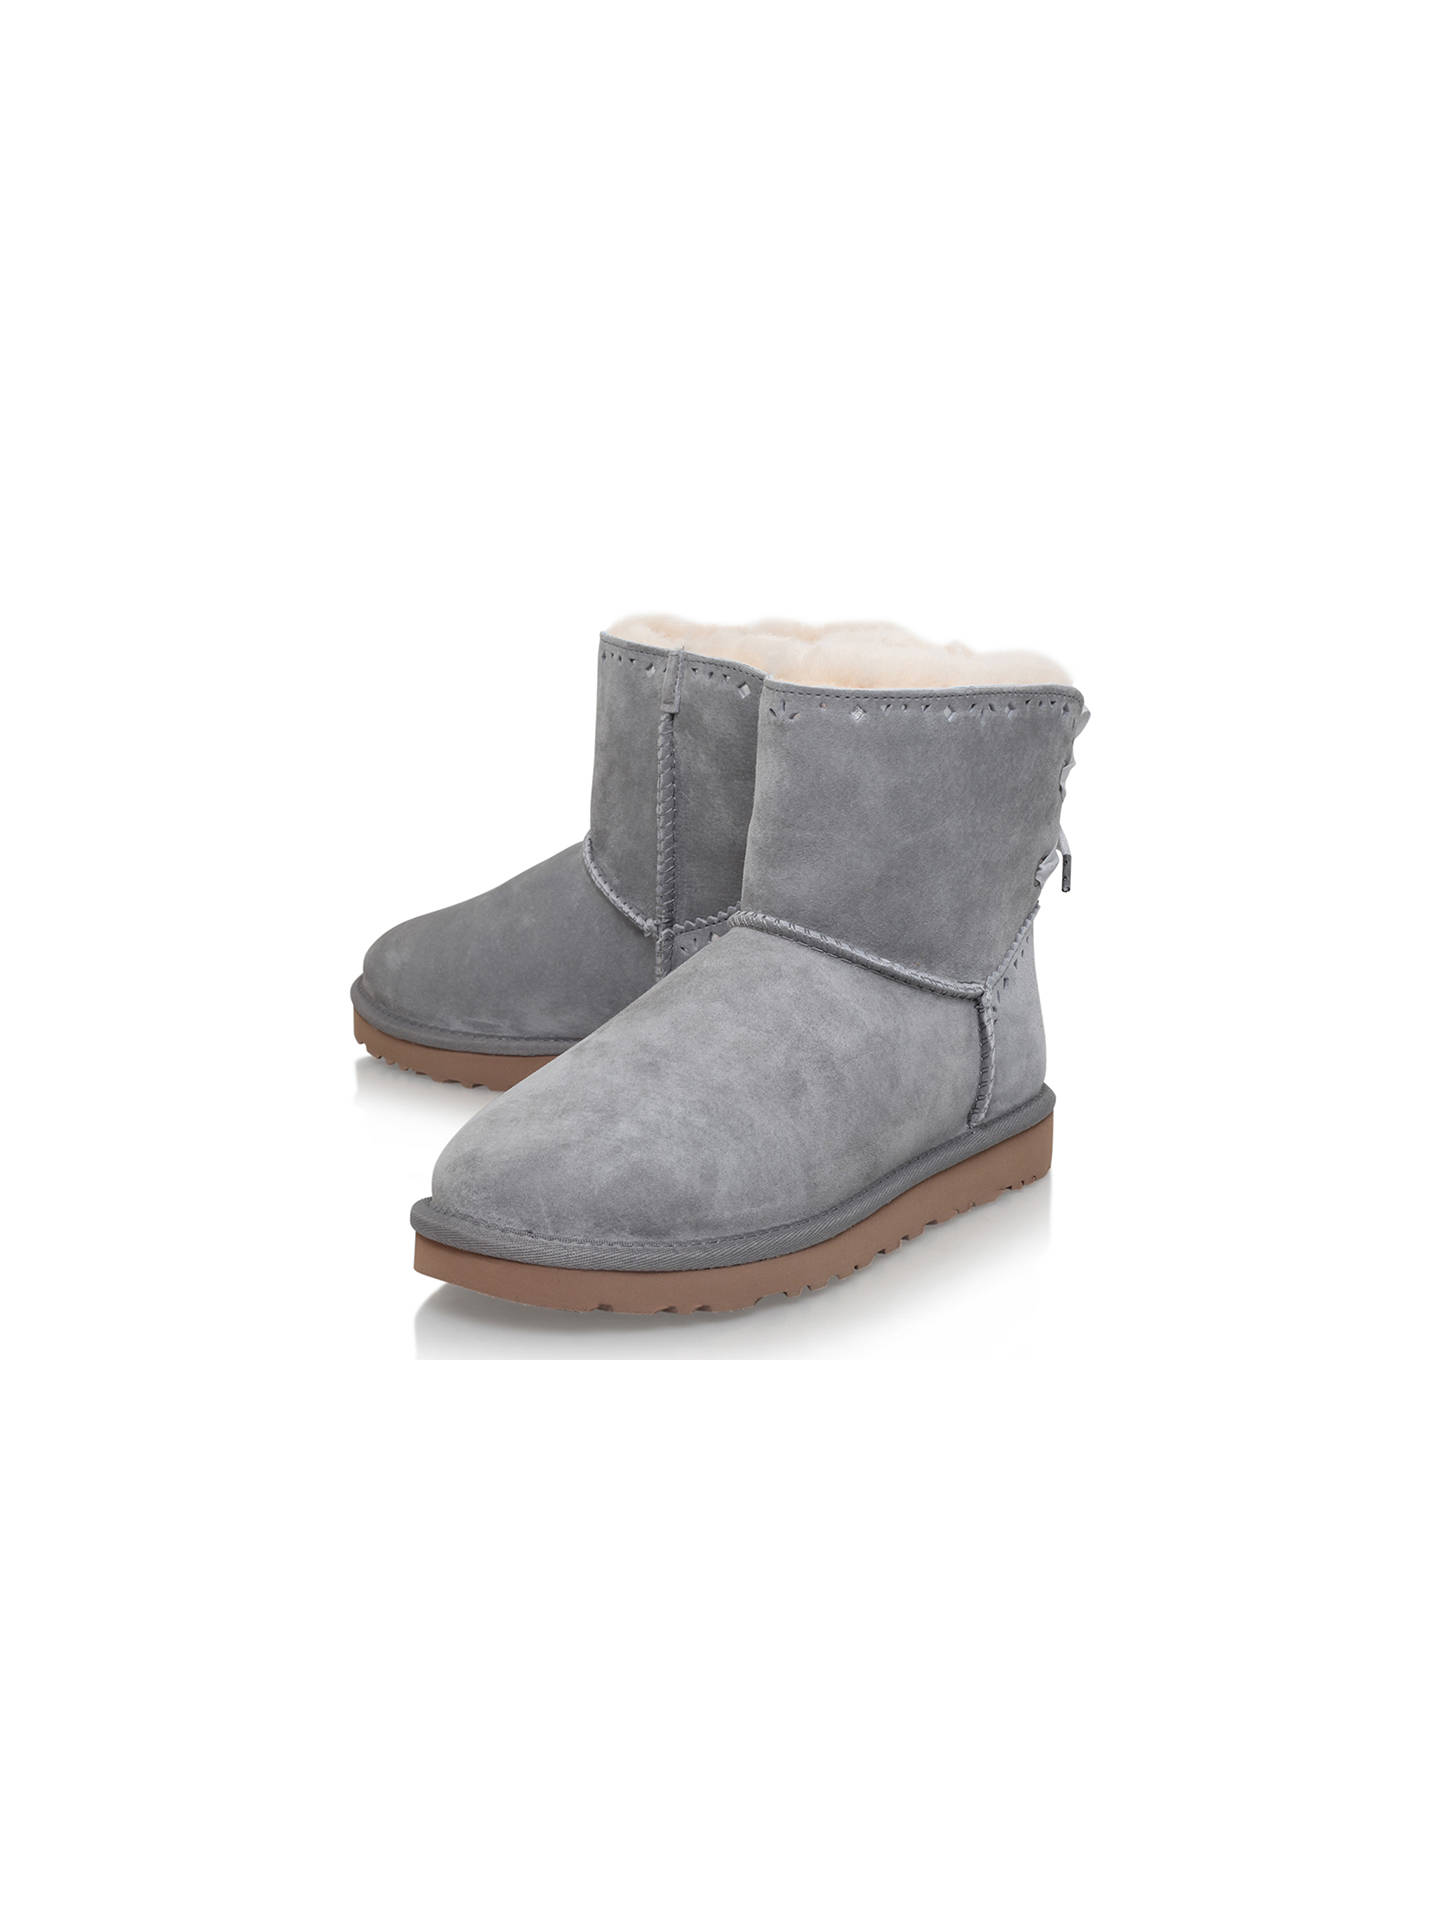 7788f230b97 UGG Dixie Floral Ankle Boots, Grey Suede at John Lewis & Partners